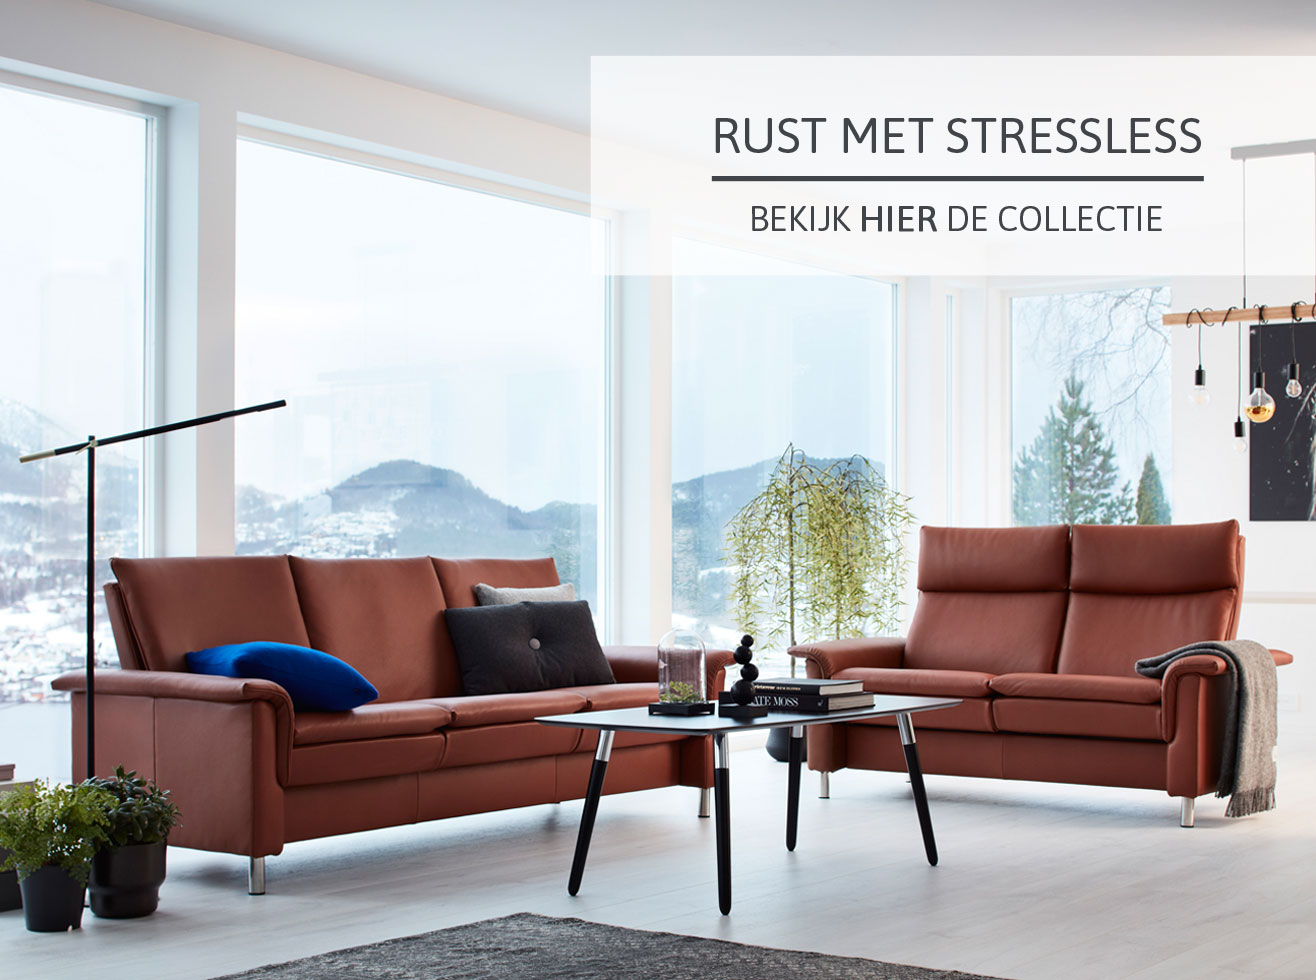 Traditioneel met Stressless